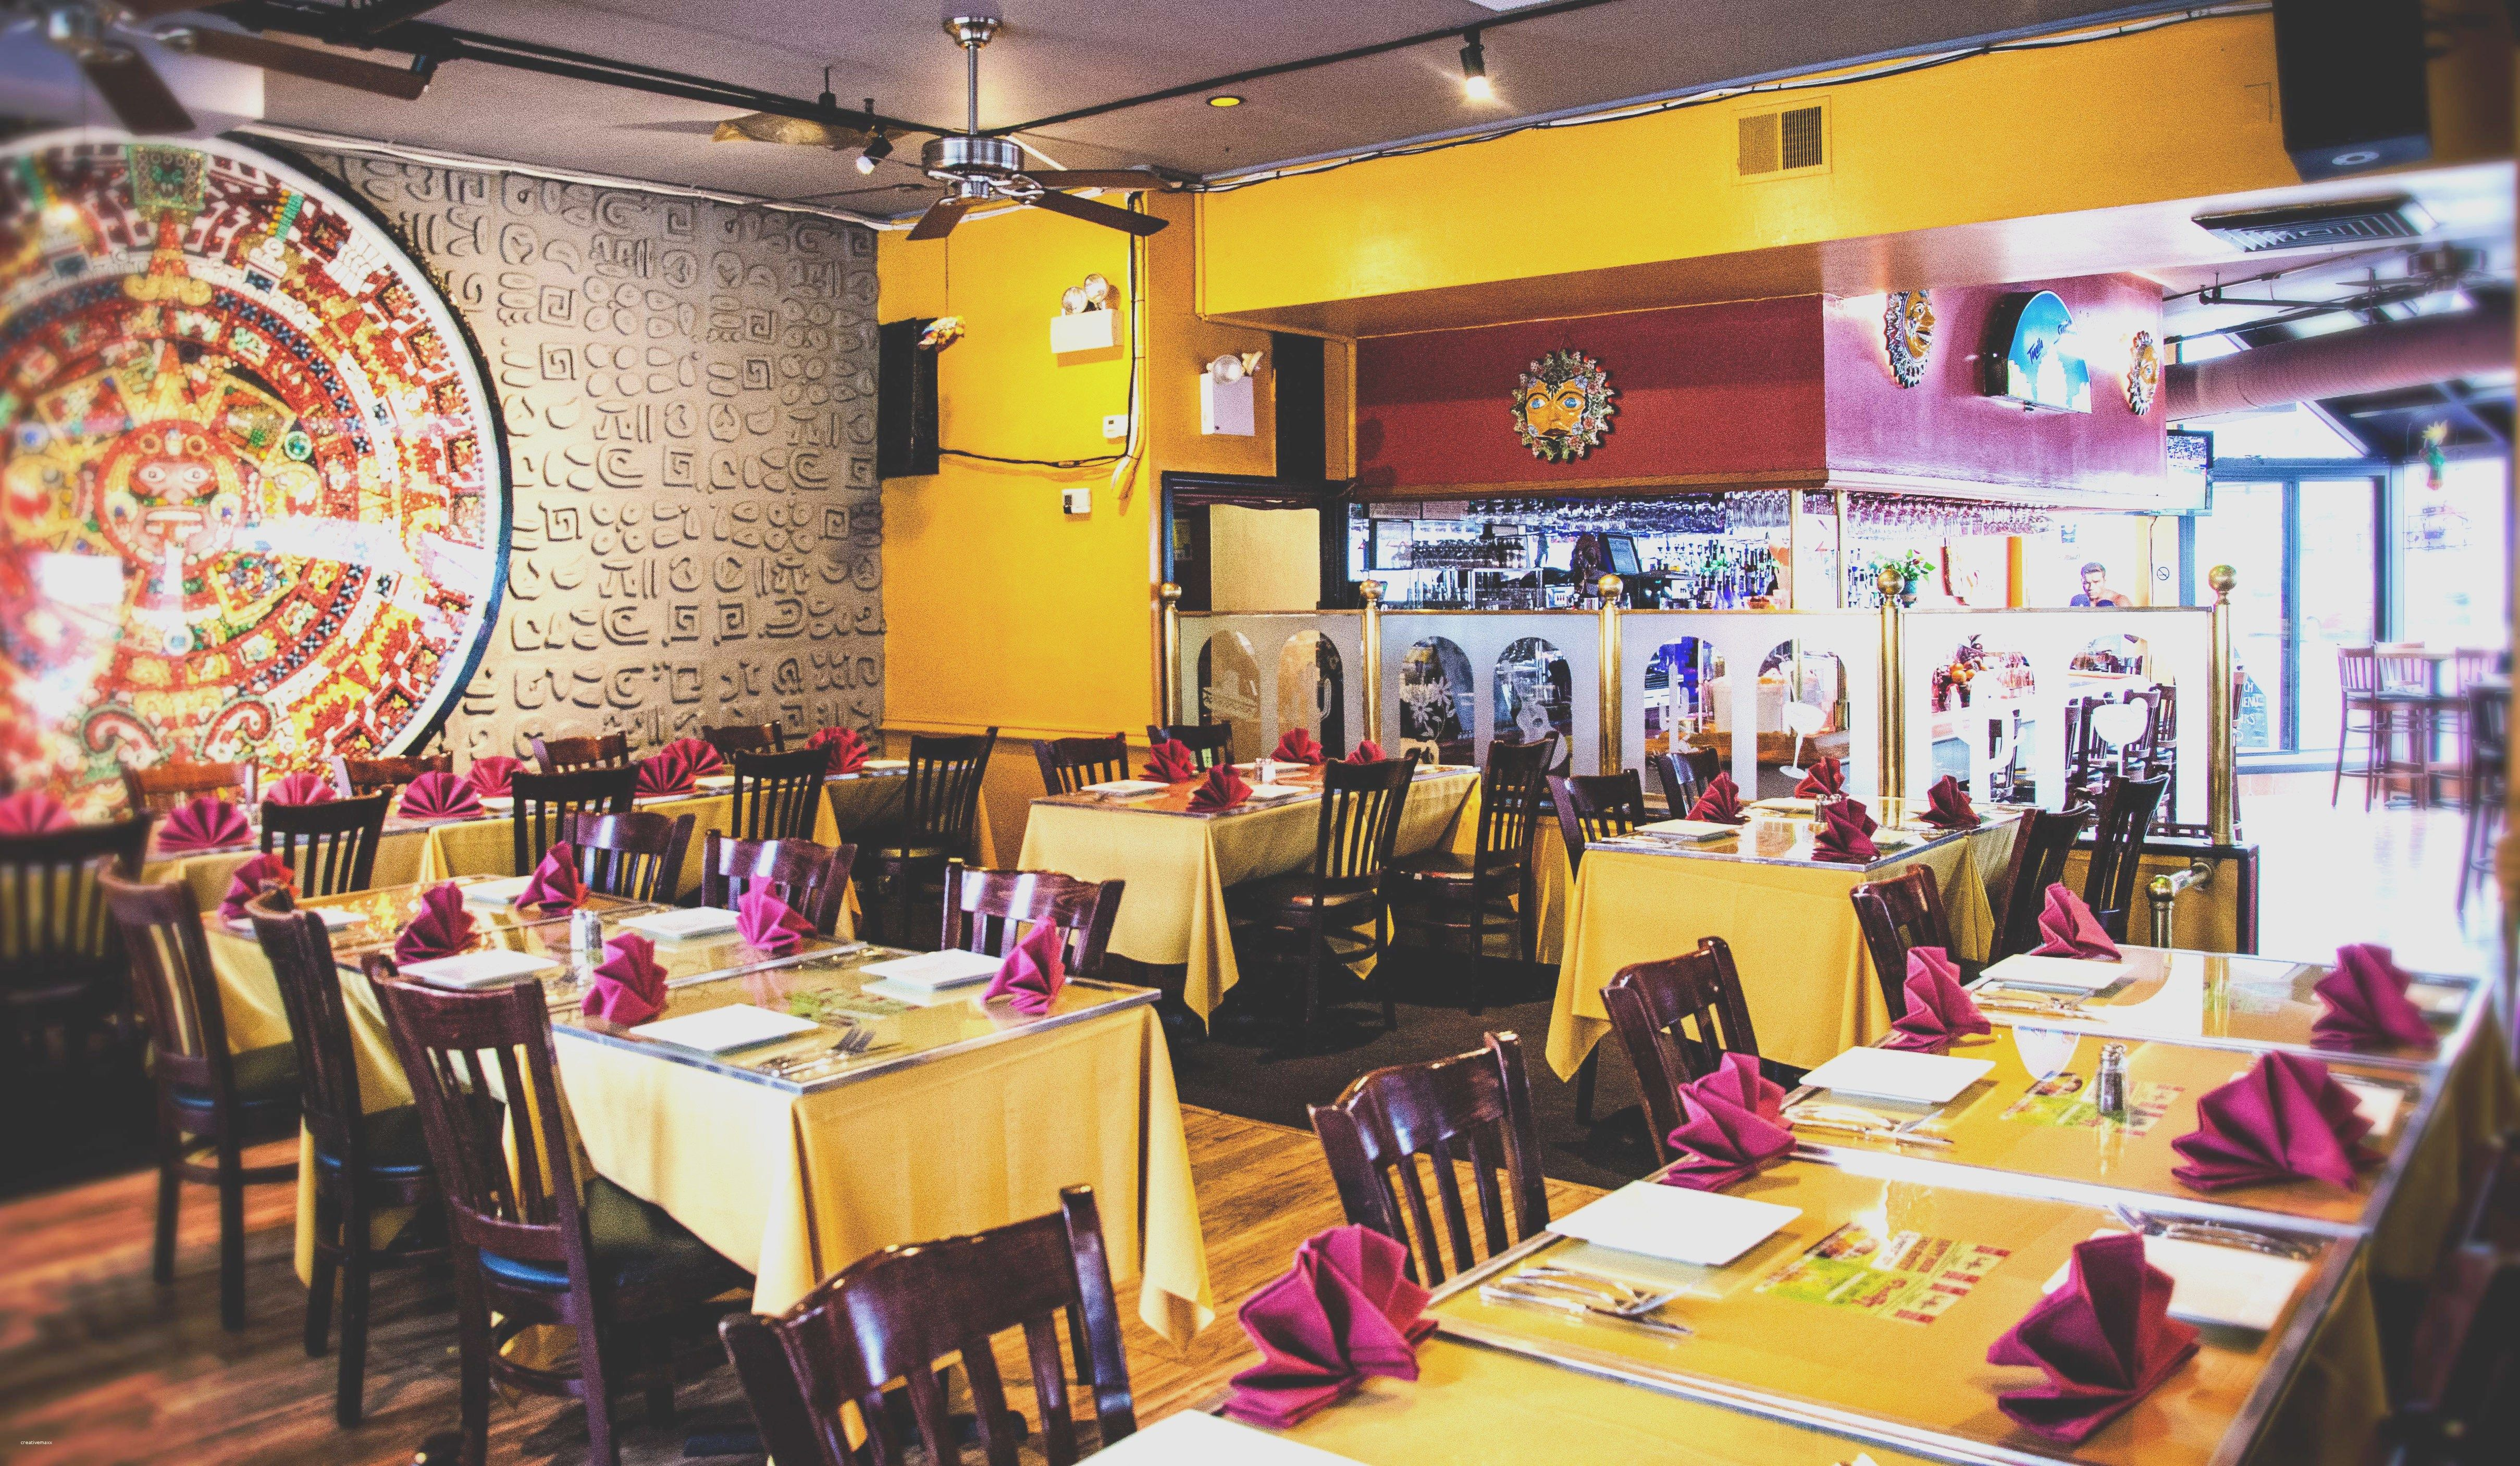 Lovely Mexican Restaurant Decor Interior Design Mexican restaurant